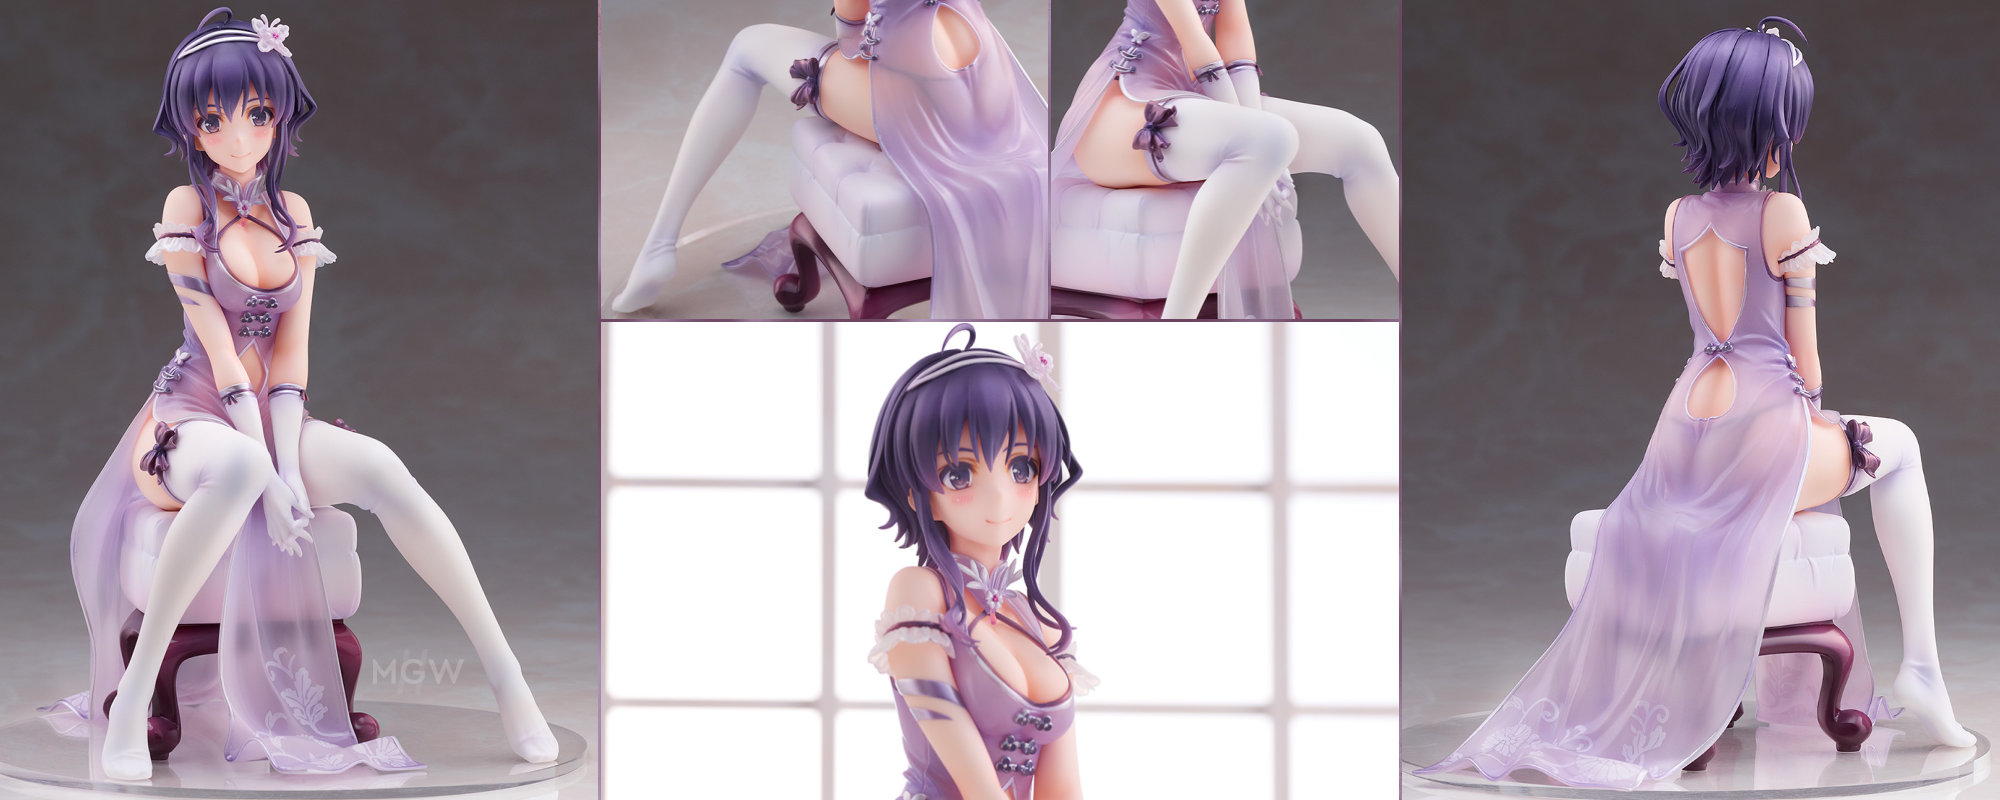 Hyoudou Michiru Lingerie ver. by ANIPLEX x ALTER from Saekano with illustration by Misaki Kurehito MyGrailWatch Anime Figure Guide